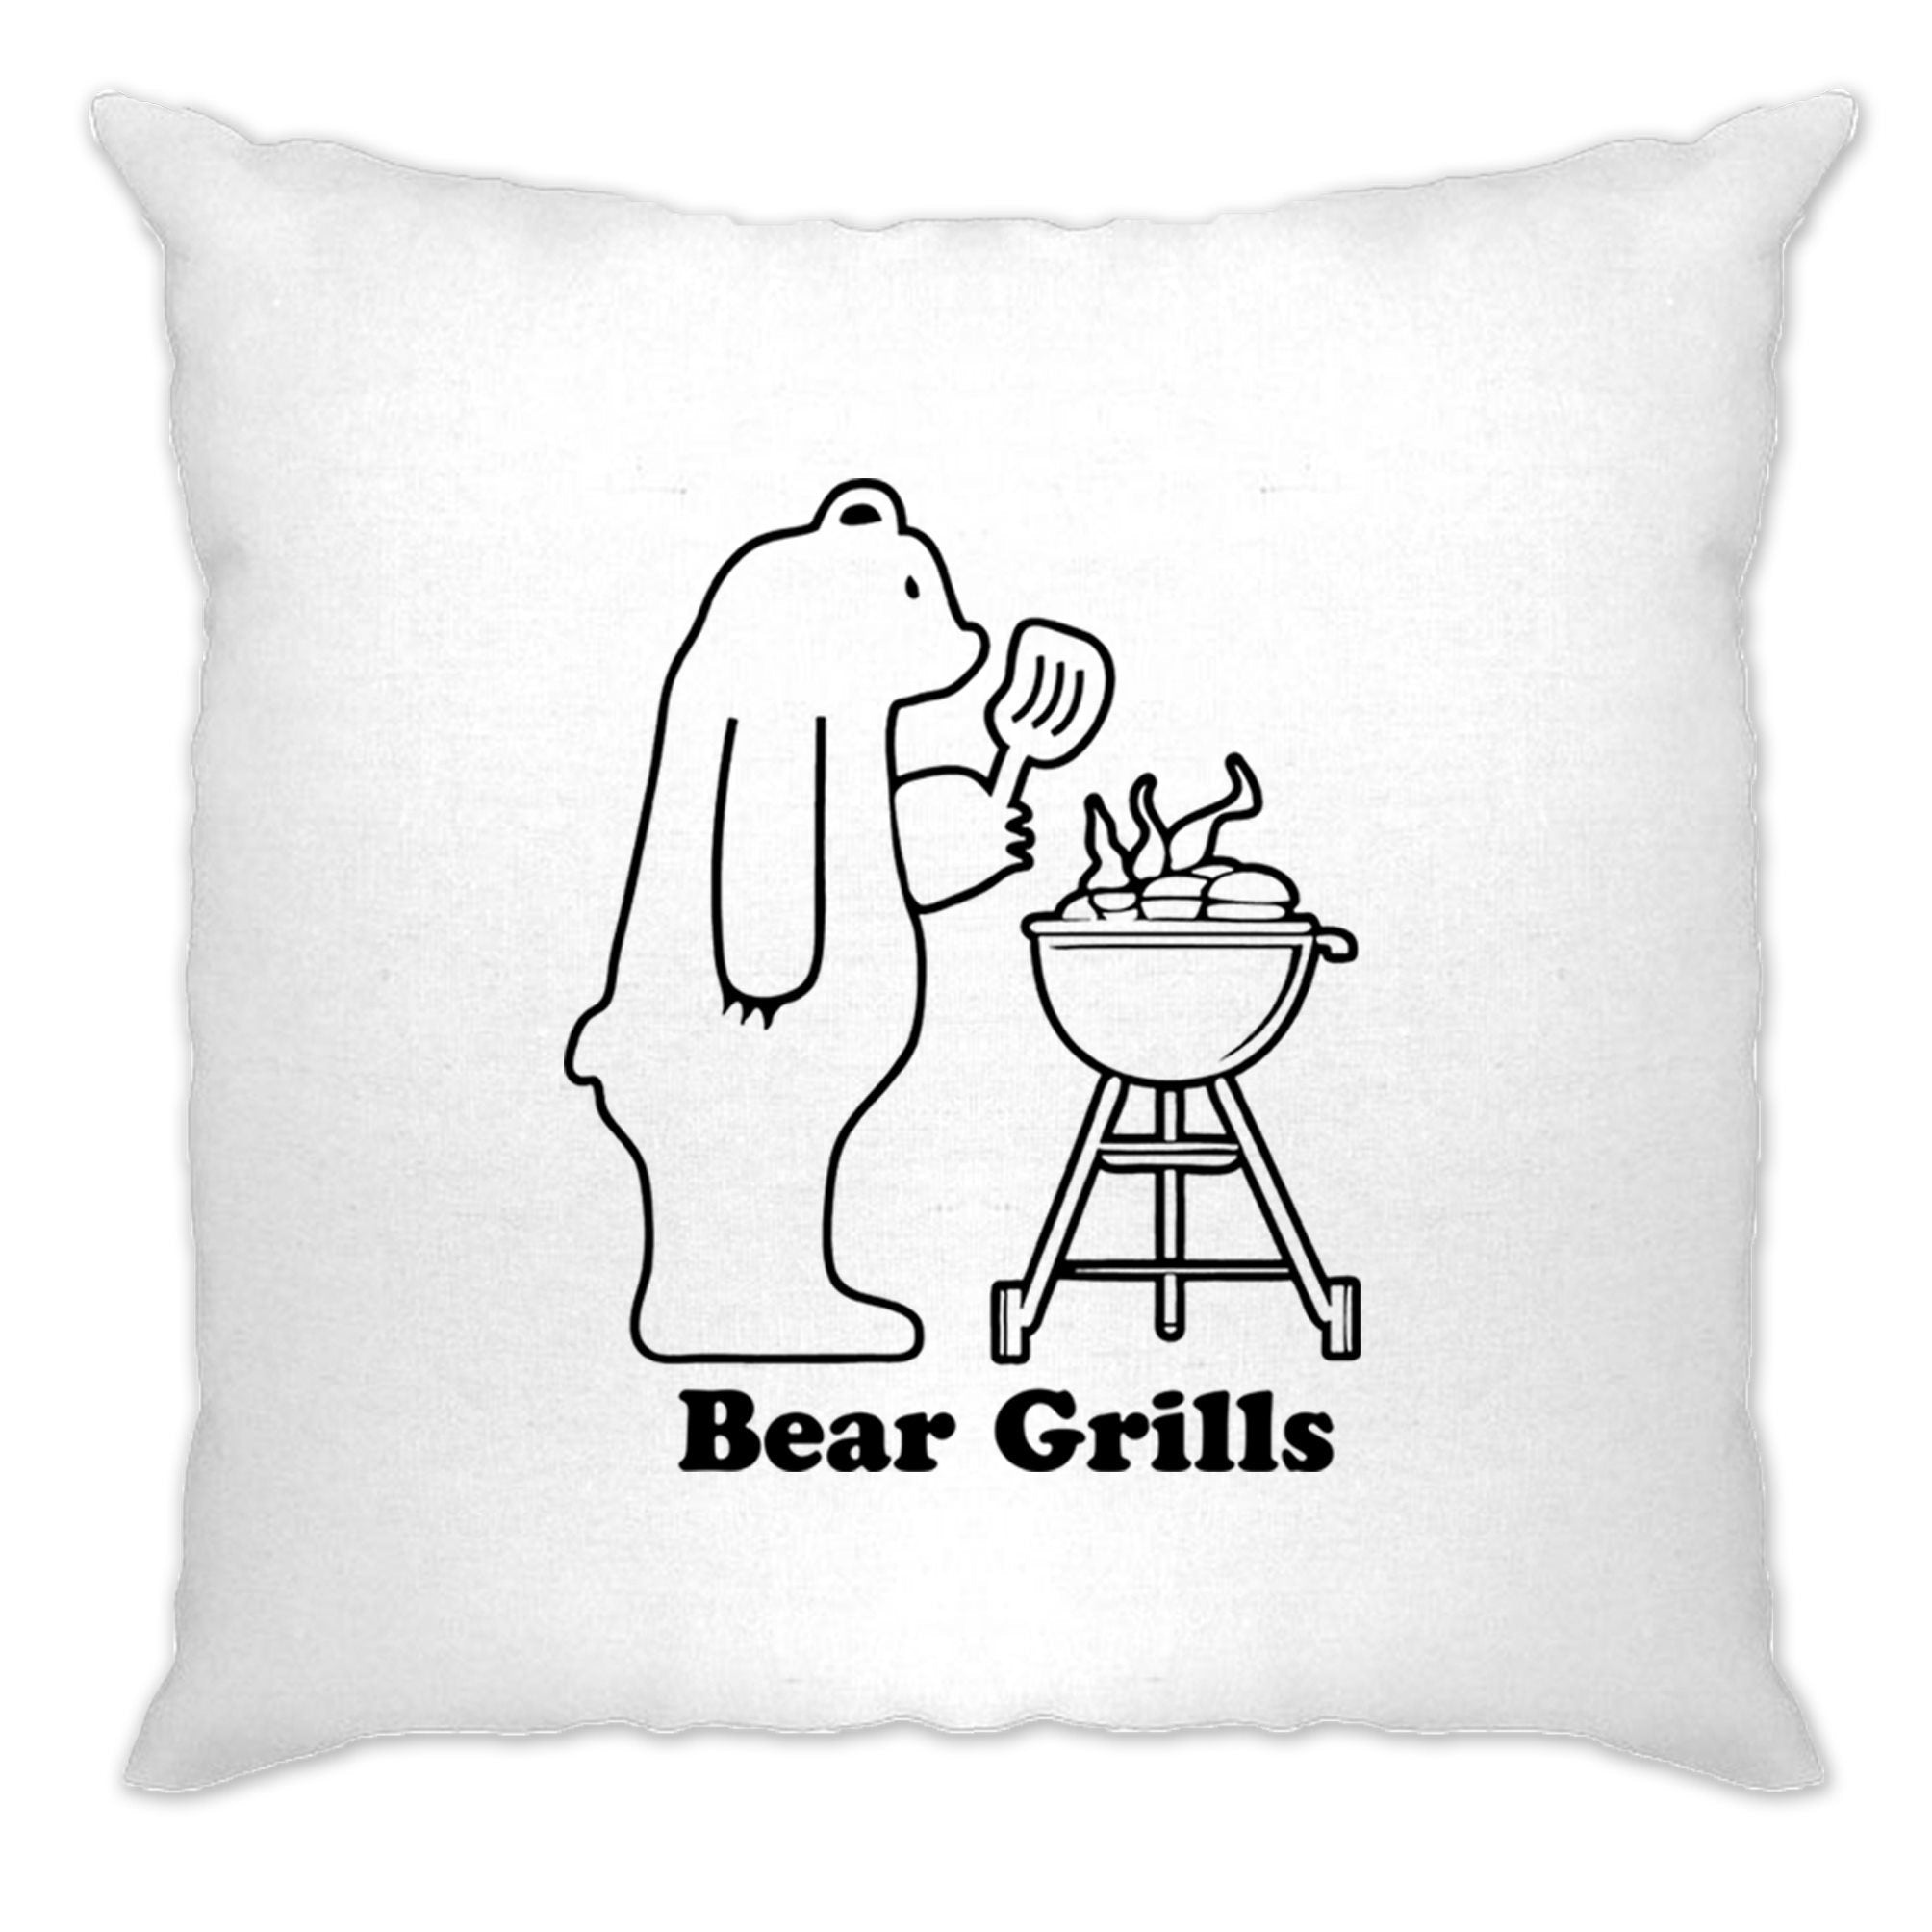 Novelty Barbecue Cushion Cover Grilling Bear Grills Joke